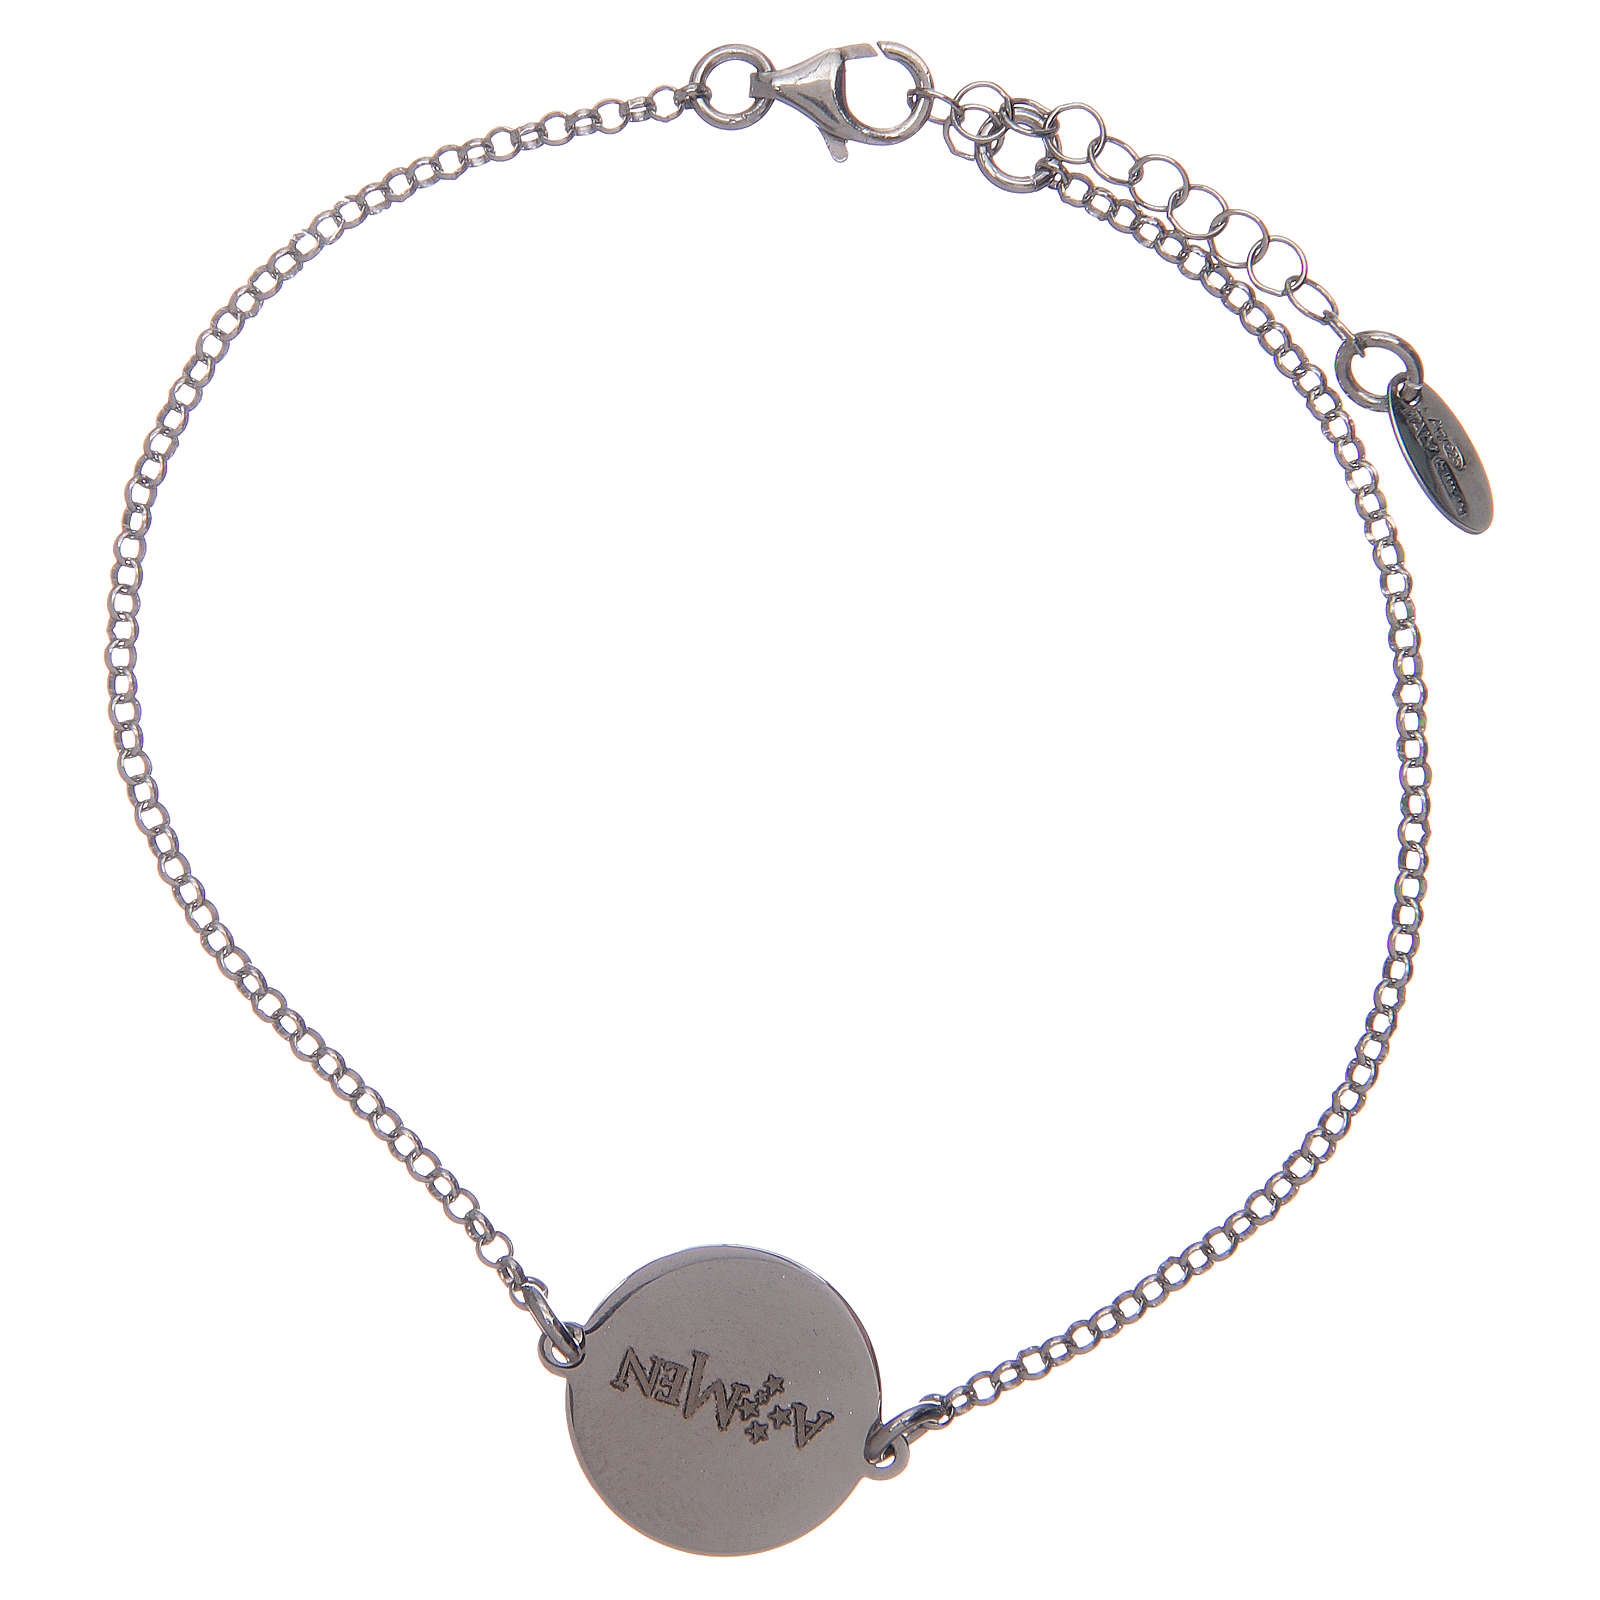 Amen bracelet in 925 sterling silver with Hail Mary prayer in Latin 4